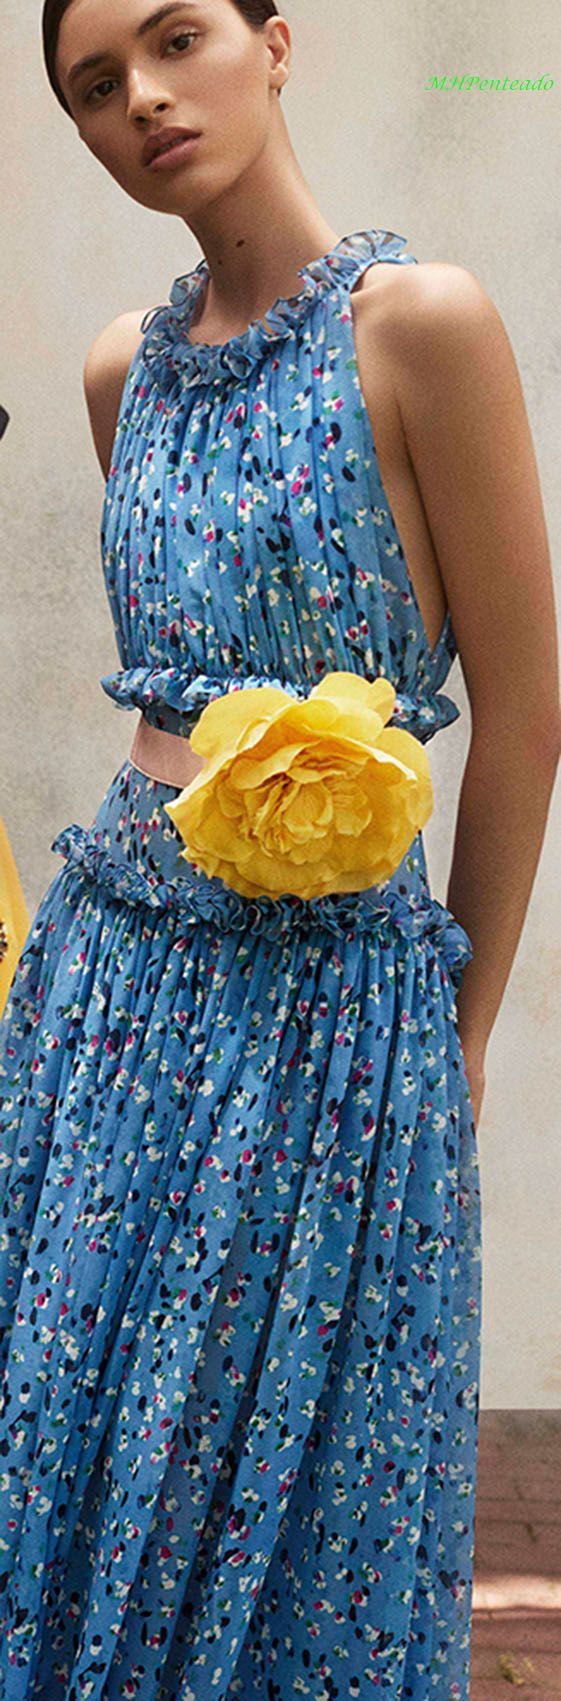 Carolina Herrera Resort 2018. I really like this dress, however, I could do without the big yellow flower. #carolinaherrera #perfume #perfumes Guatemala